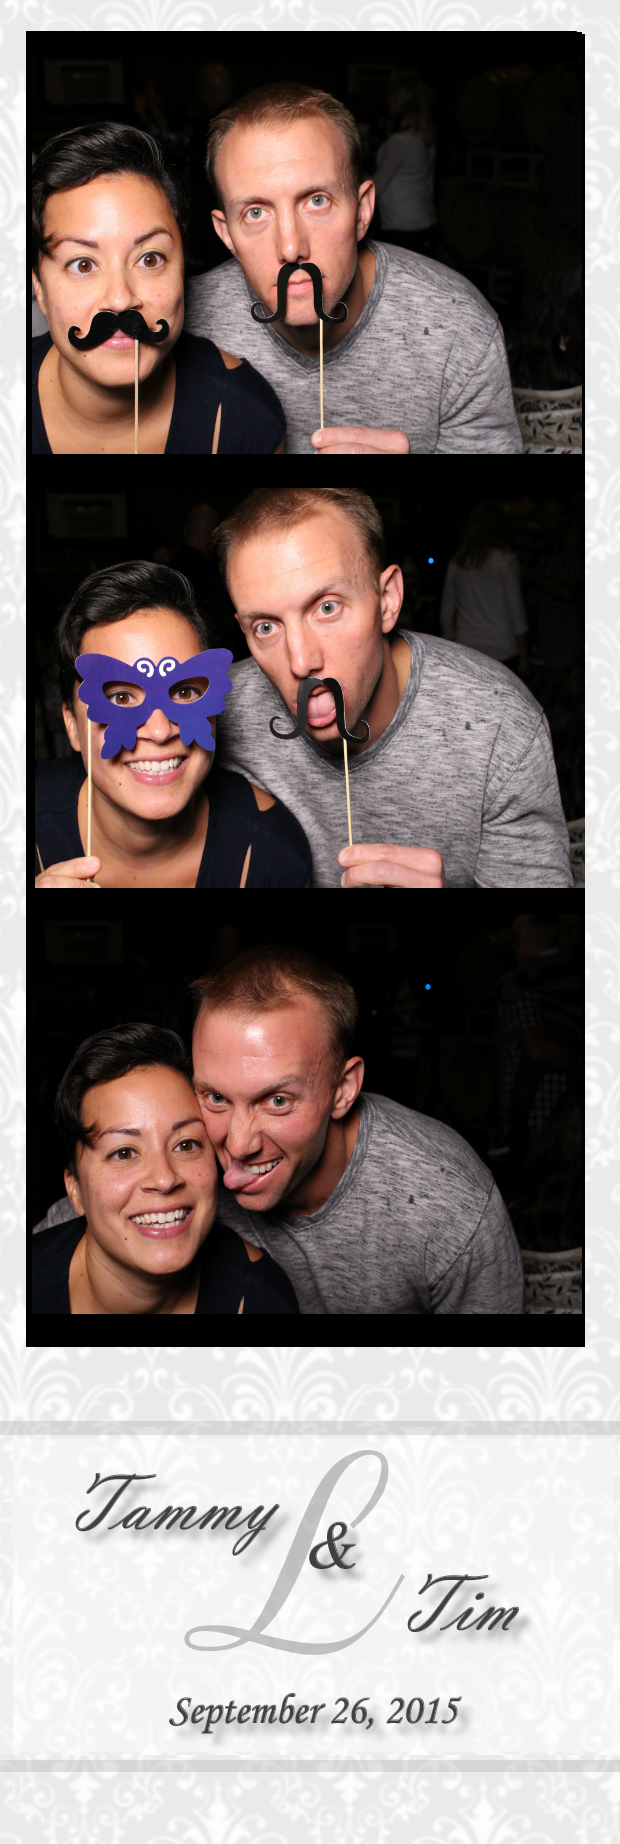 Guest House Events Photo Booth Strips T&T (28).jpg